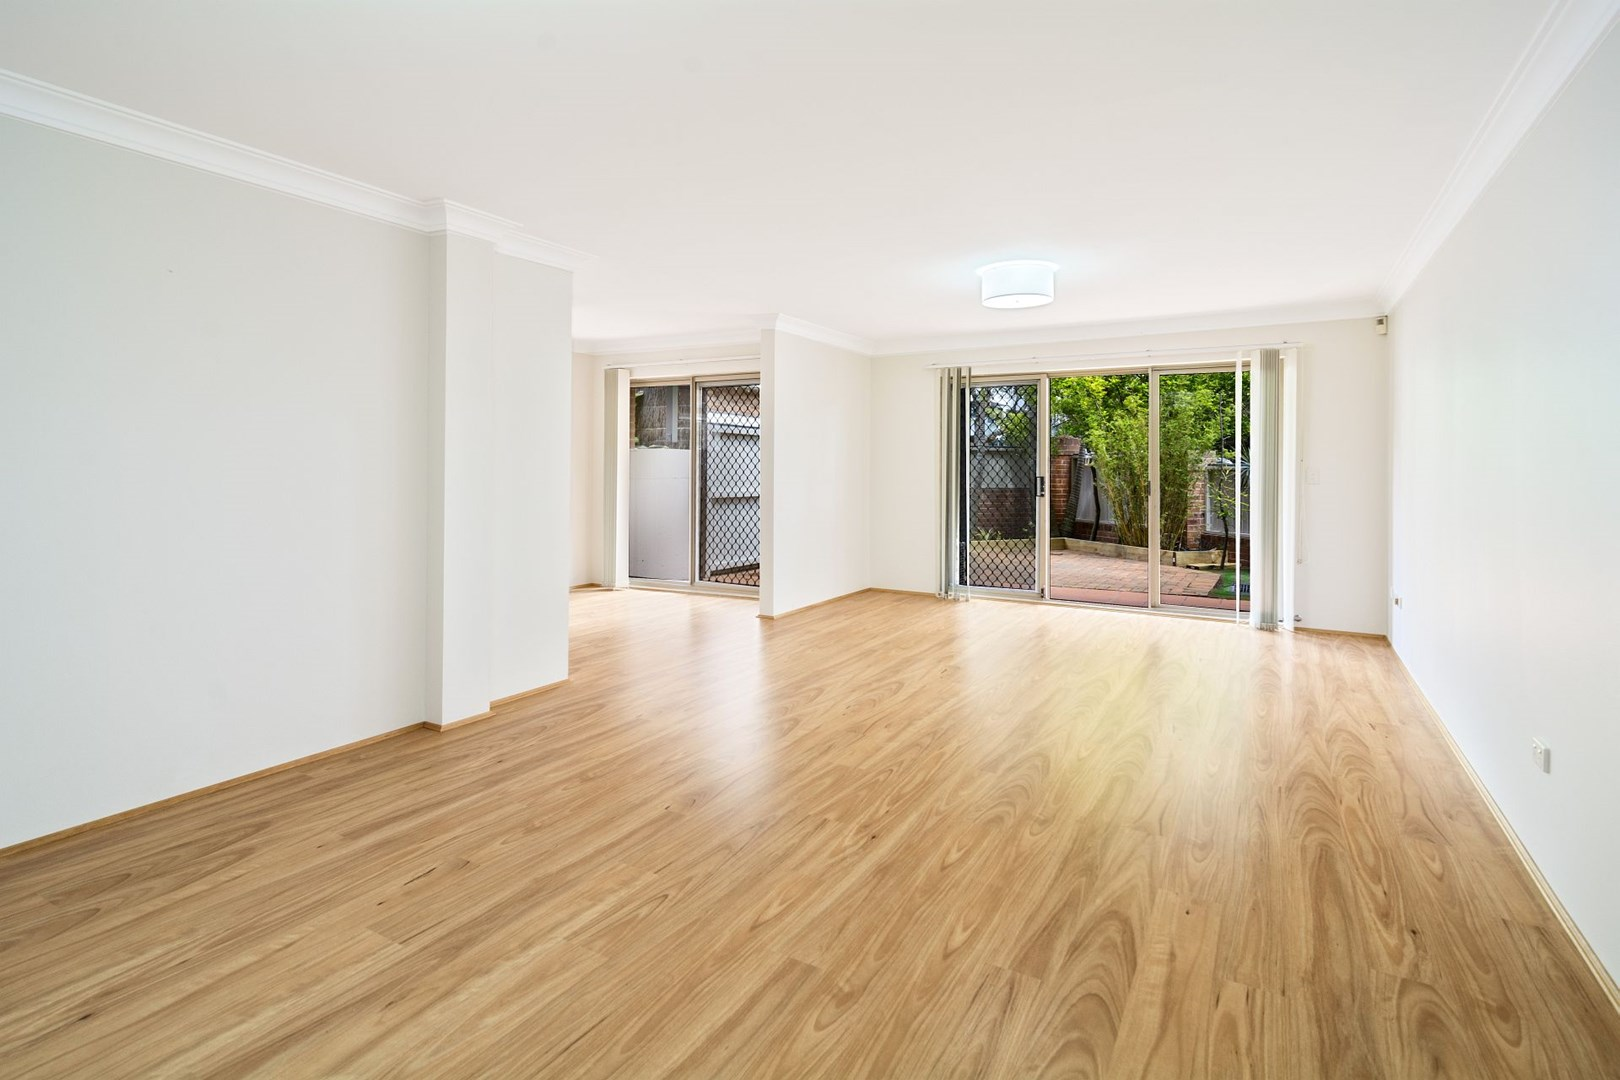 4/1-5 Fredben Avenue, Cammeray NSW 2062, Image 0